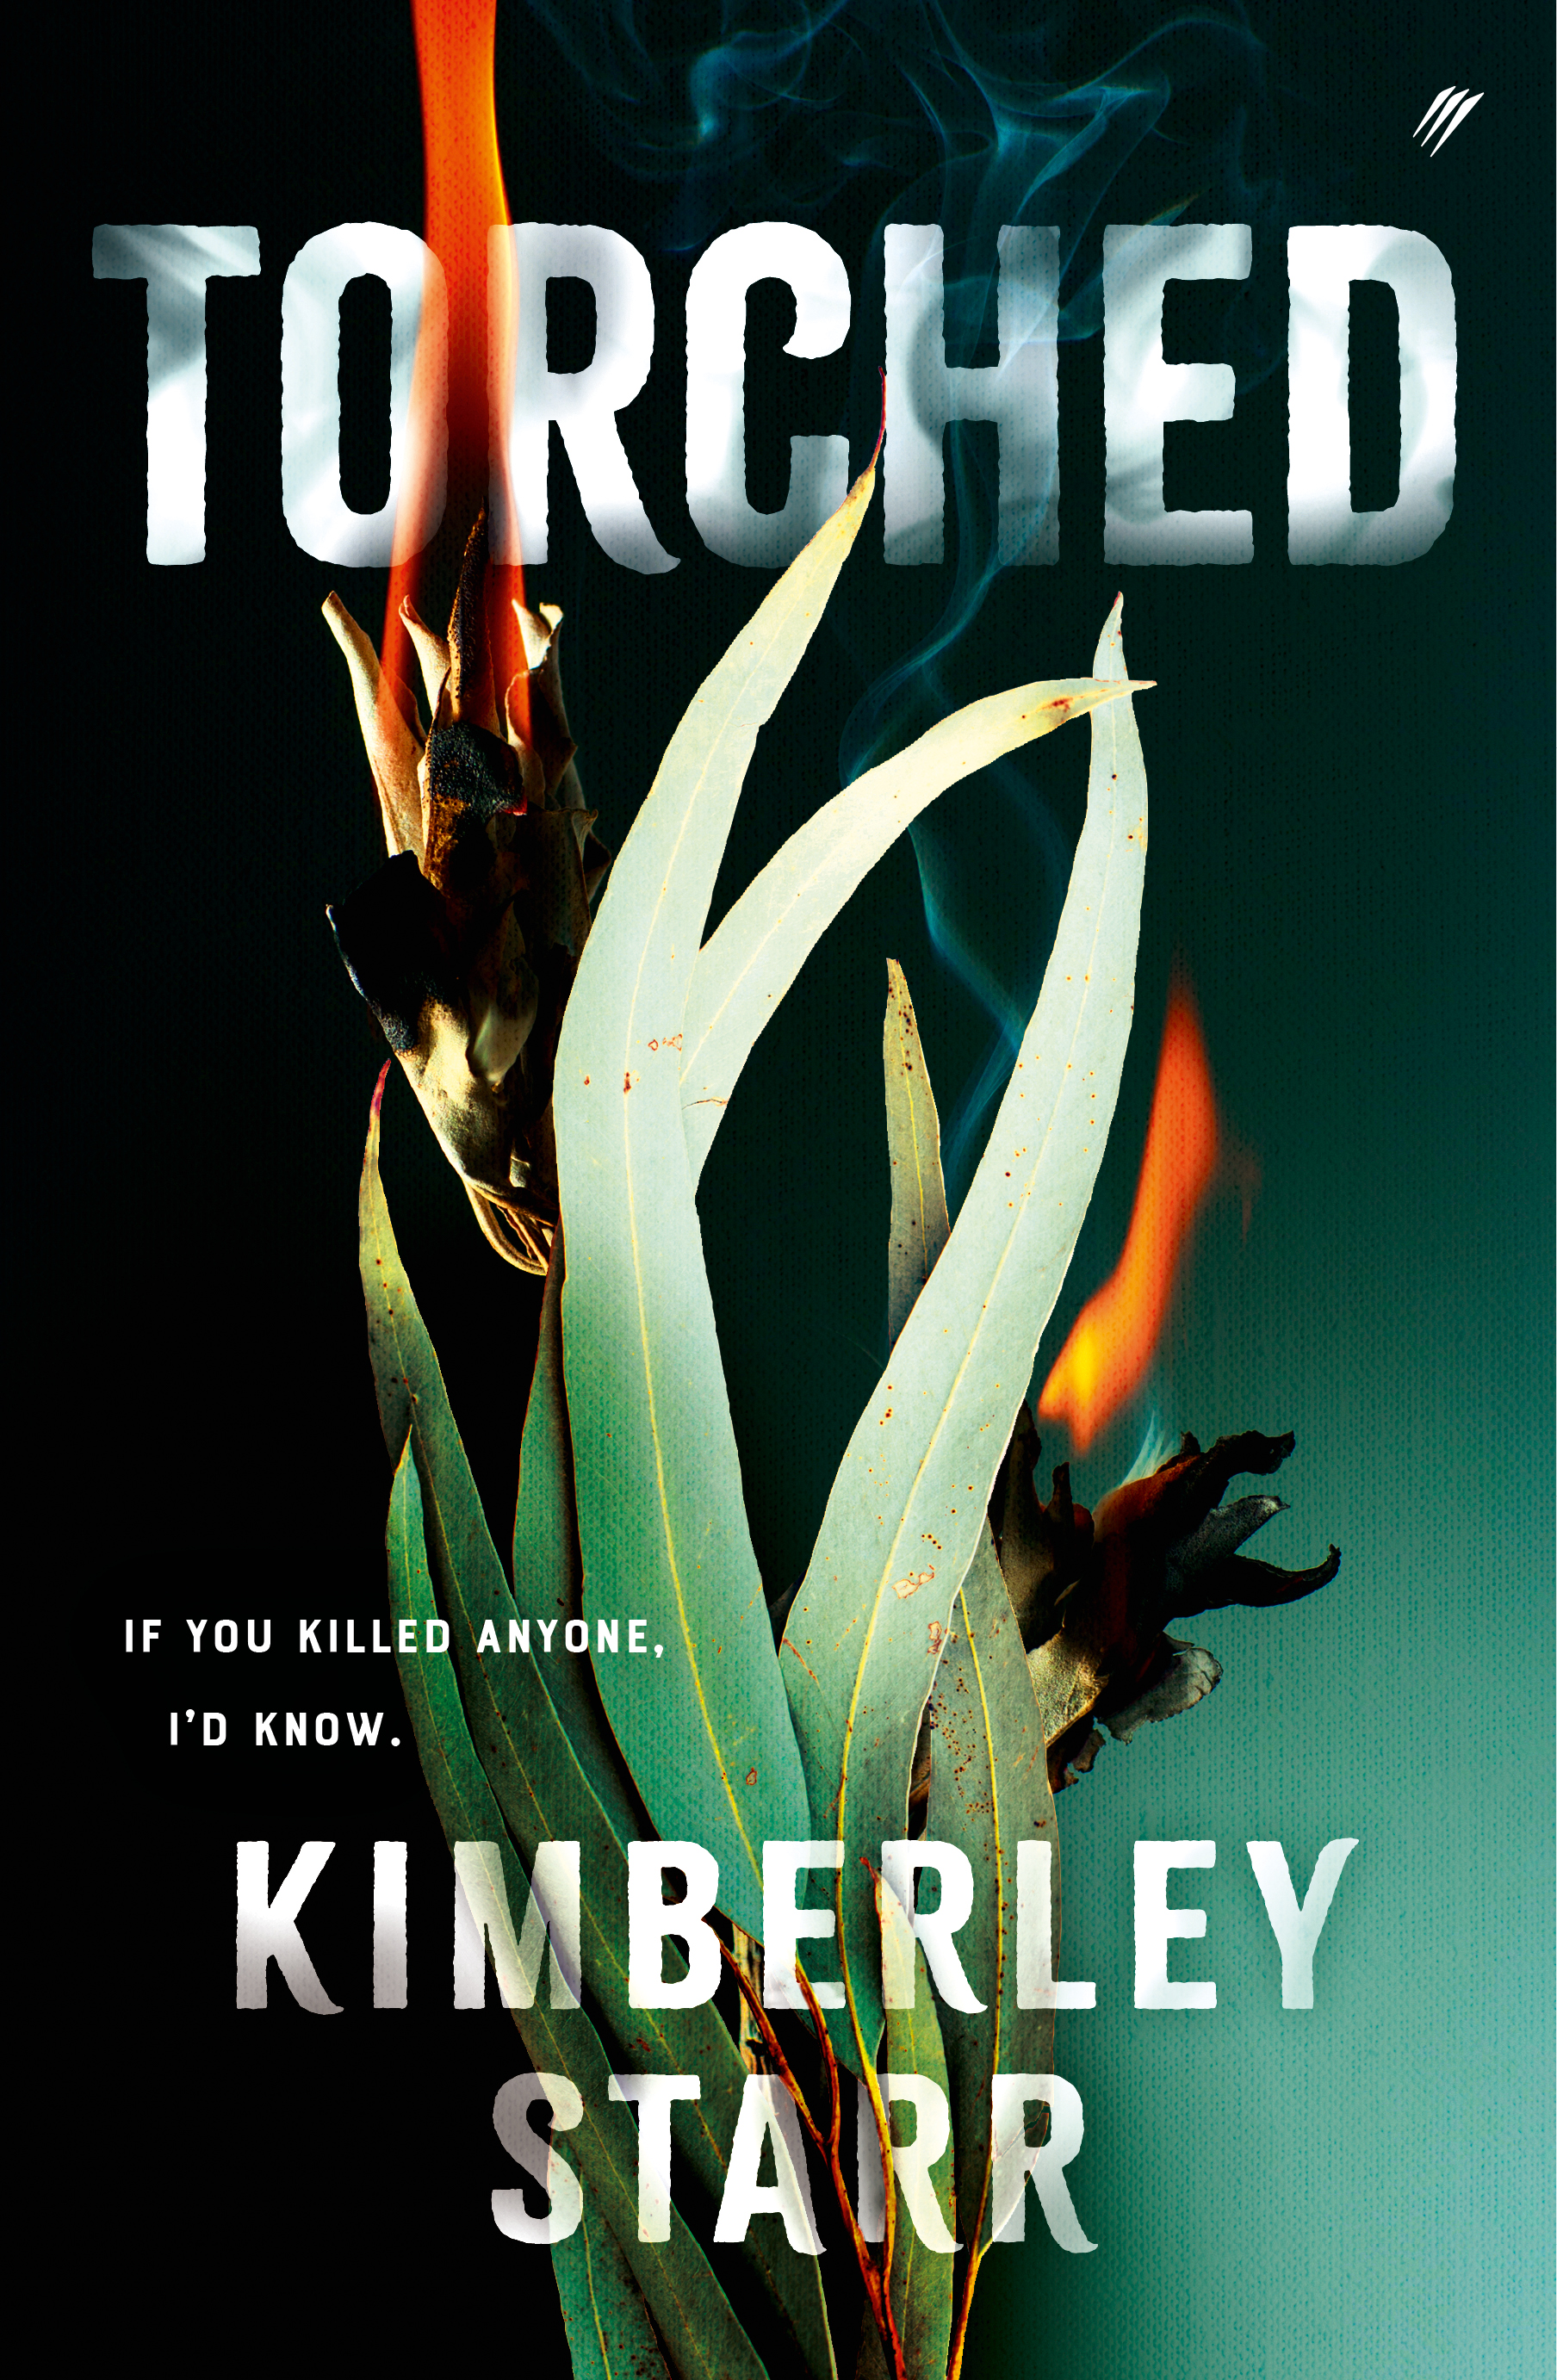 Cover image of 'Torched' by Kimberley Starr